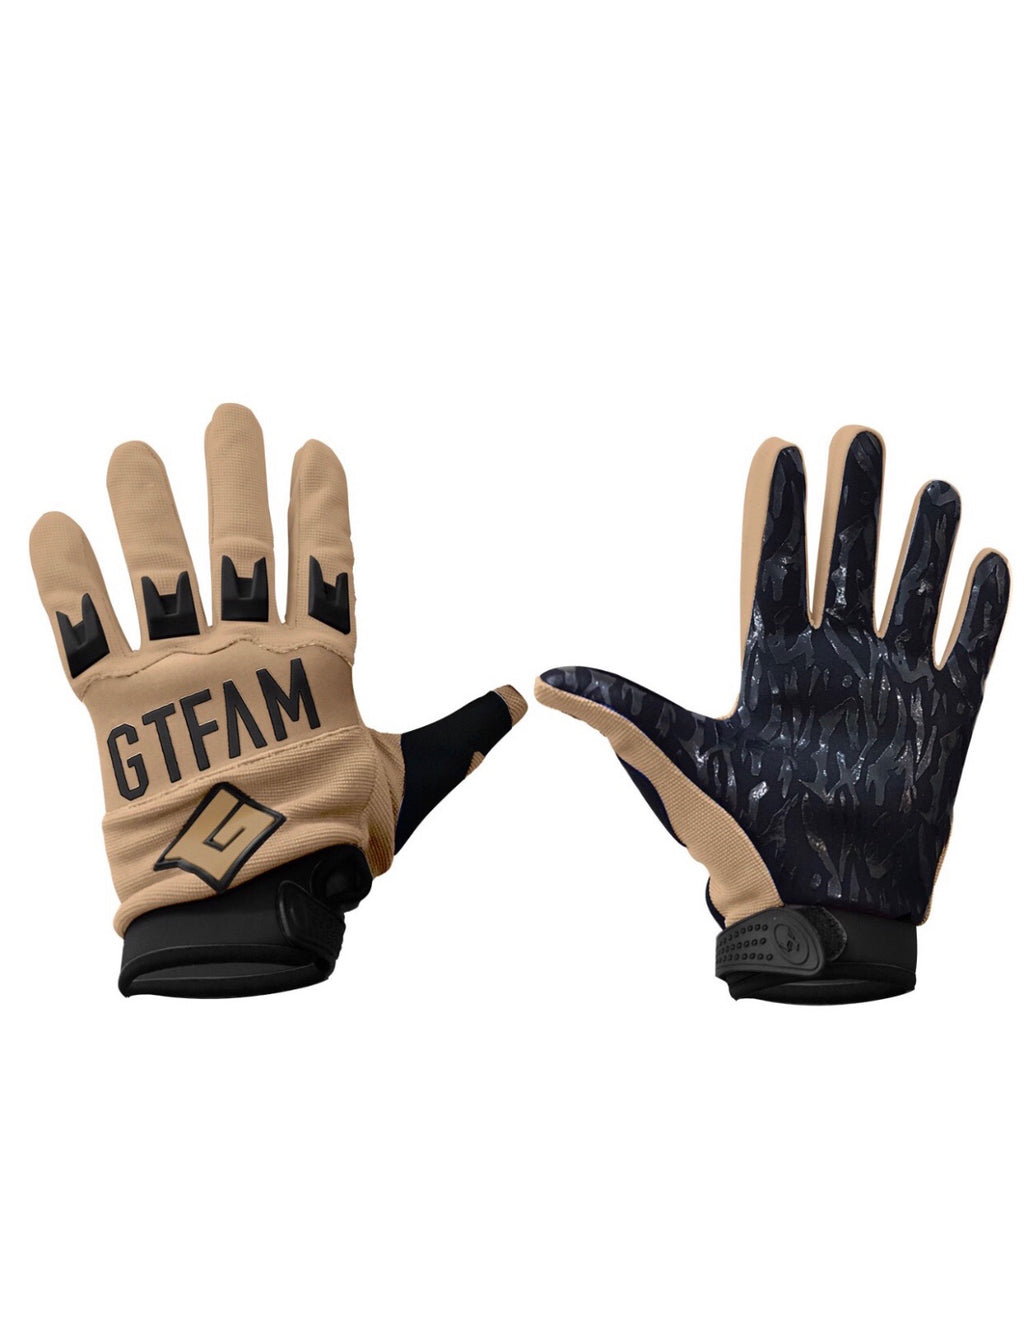 GIANT TACTICAL 2018 GTFAM GLOVES - DESSERT TAN